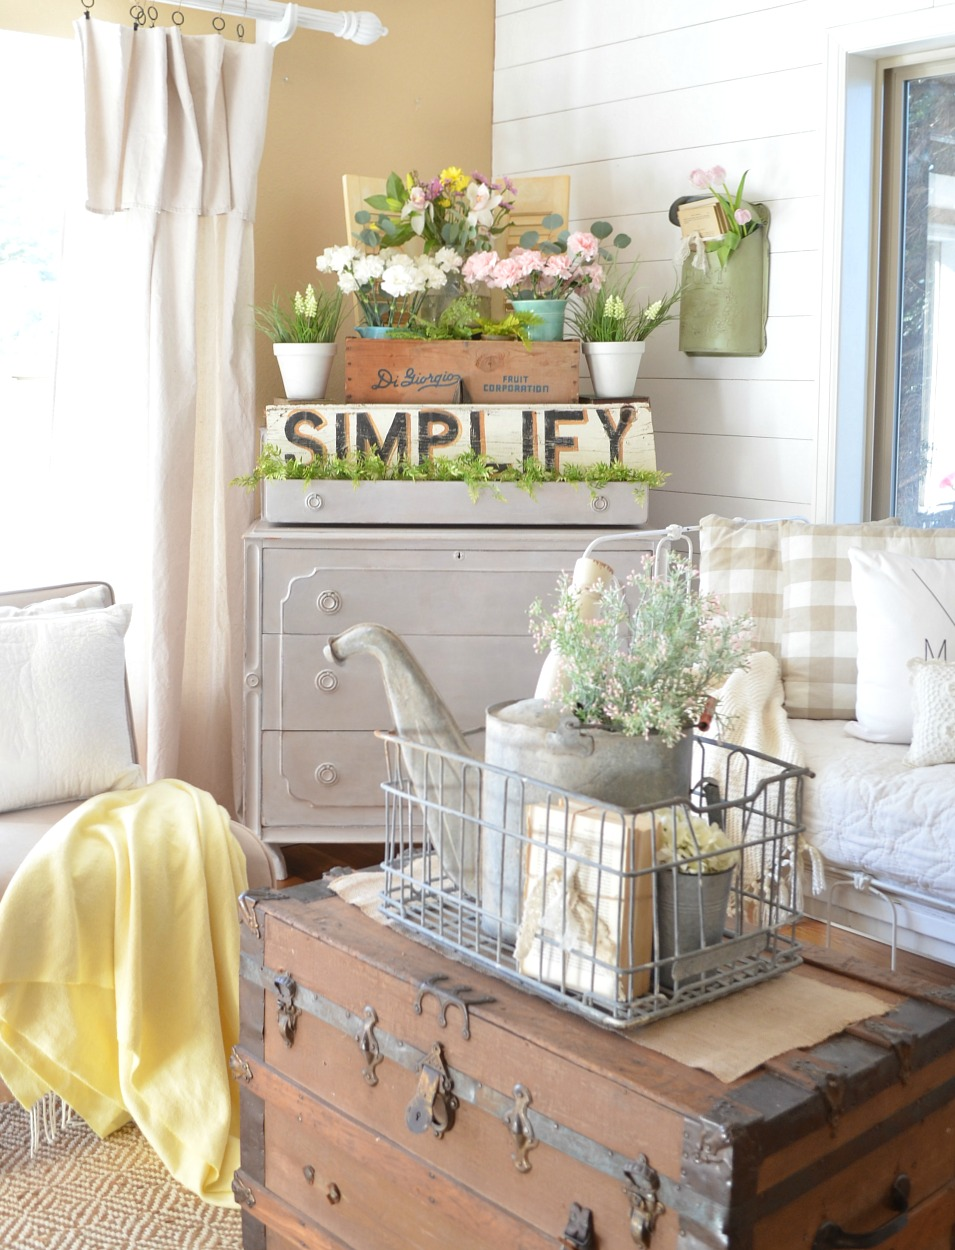 This Combination Of Vintage Pieces Florals A Typography Sign Is Just Perfect Head Over To Little Nest See More Pictures How She Put